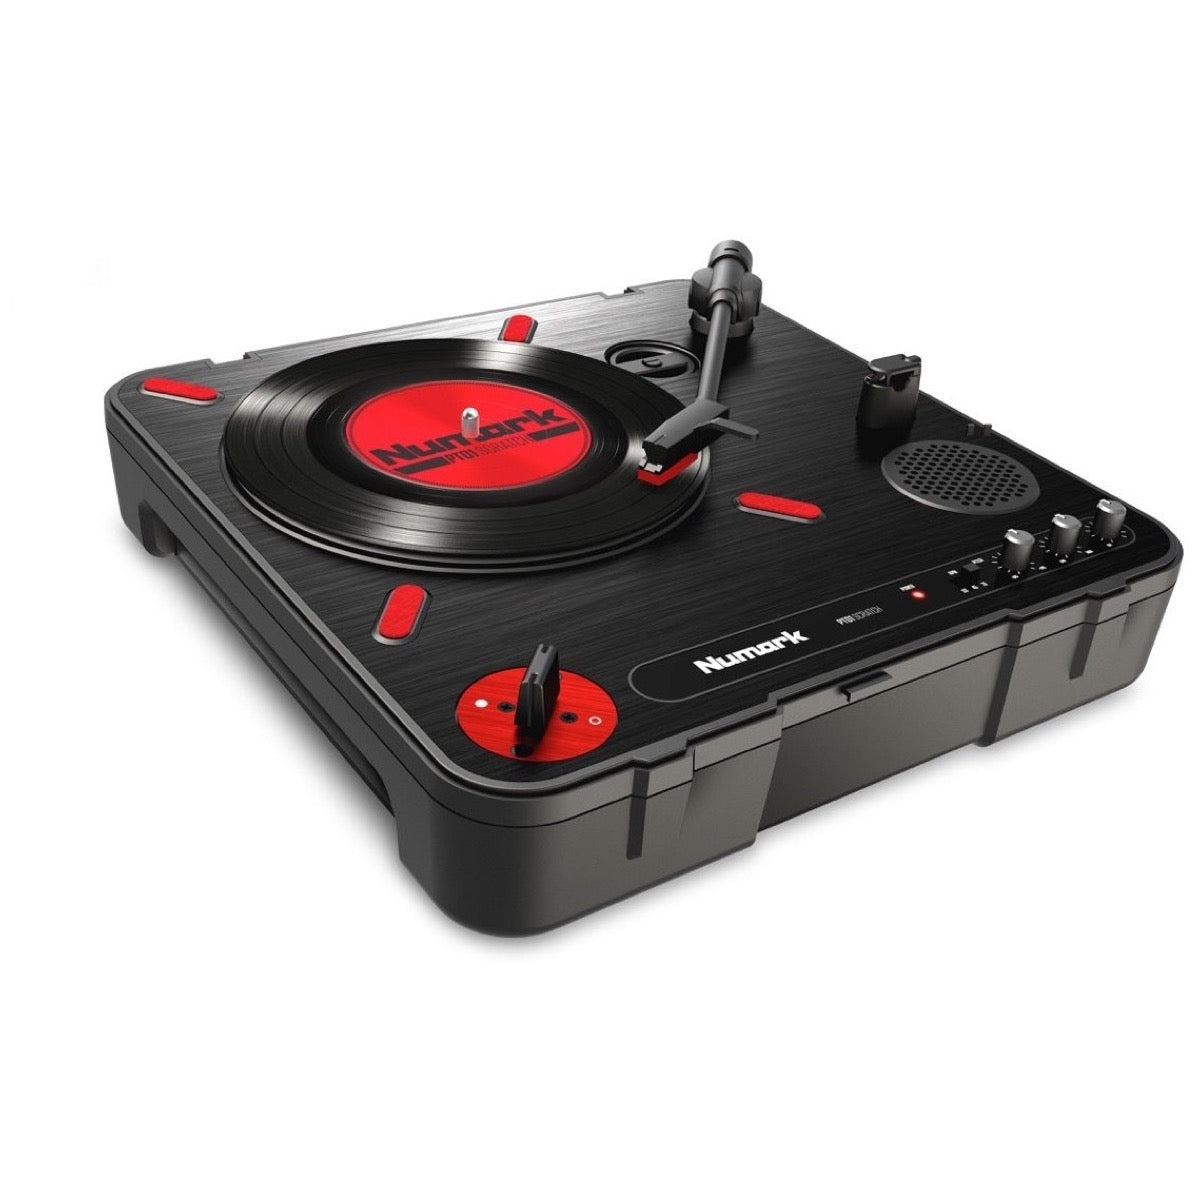 Numark PT01 Scratch Portable Belt-Drive Turntable